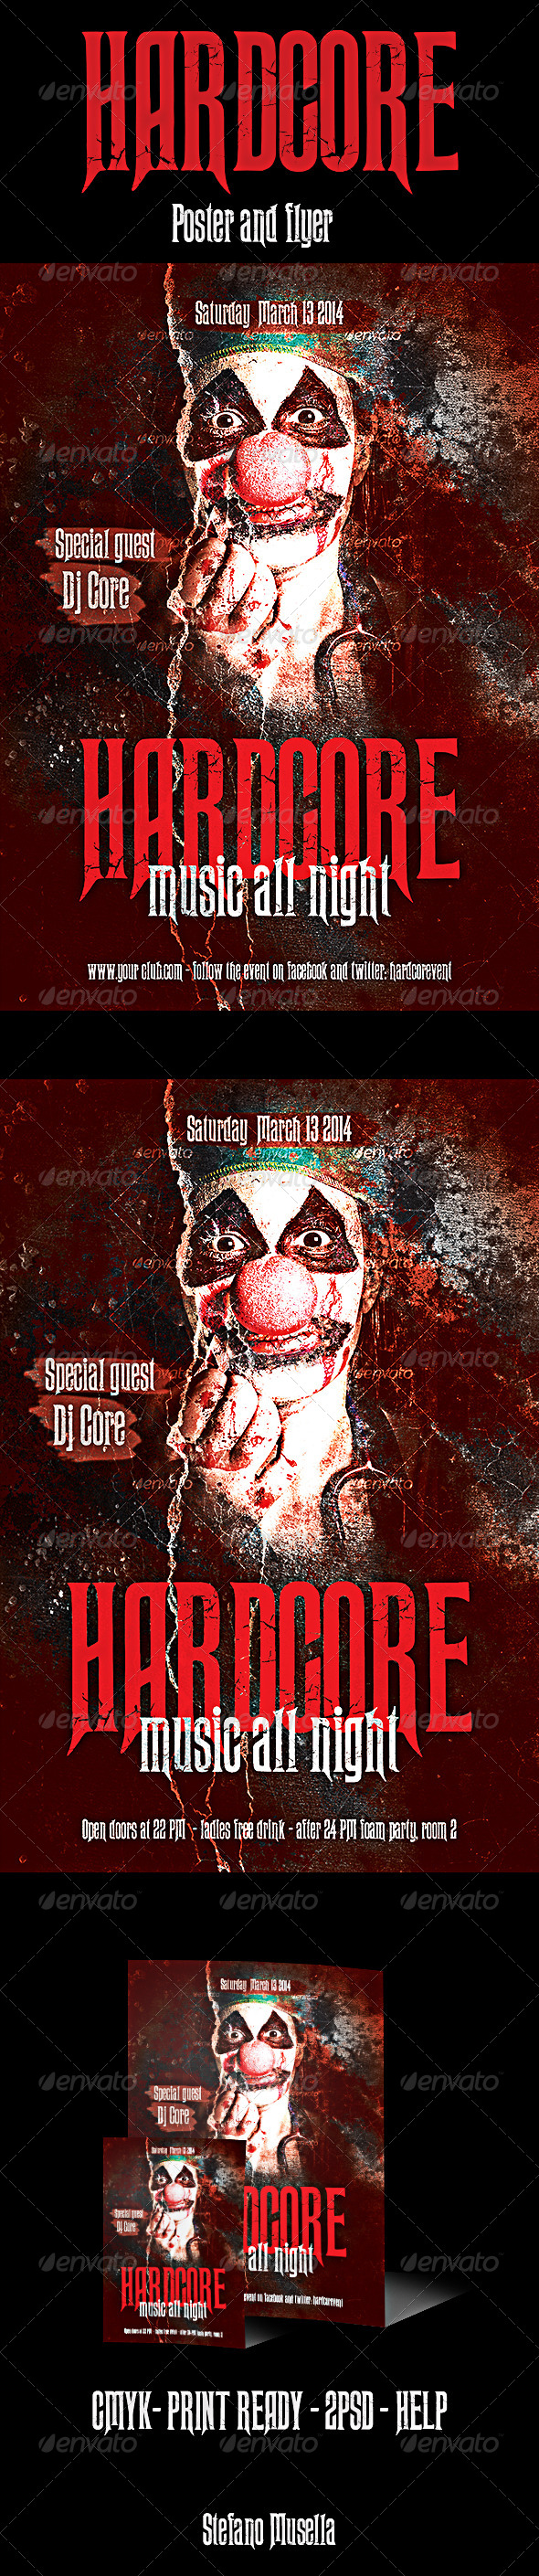 Hardcore Poster and Flyer - Events Flyers